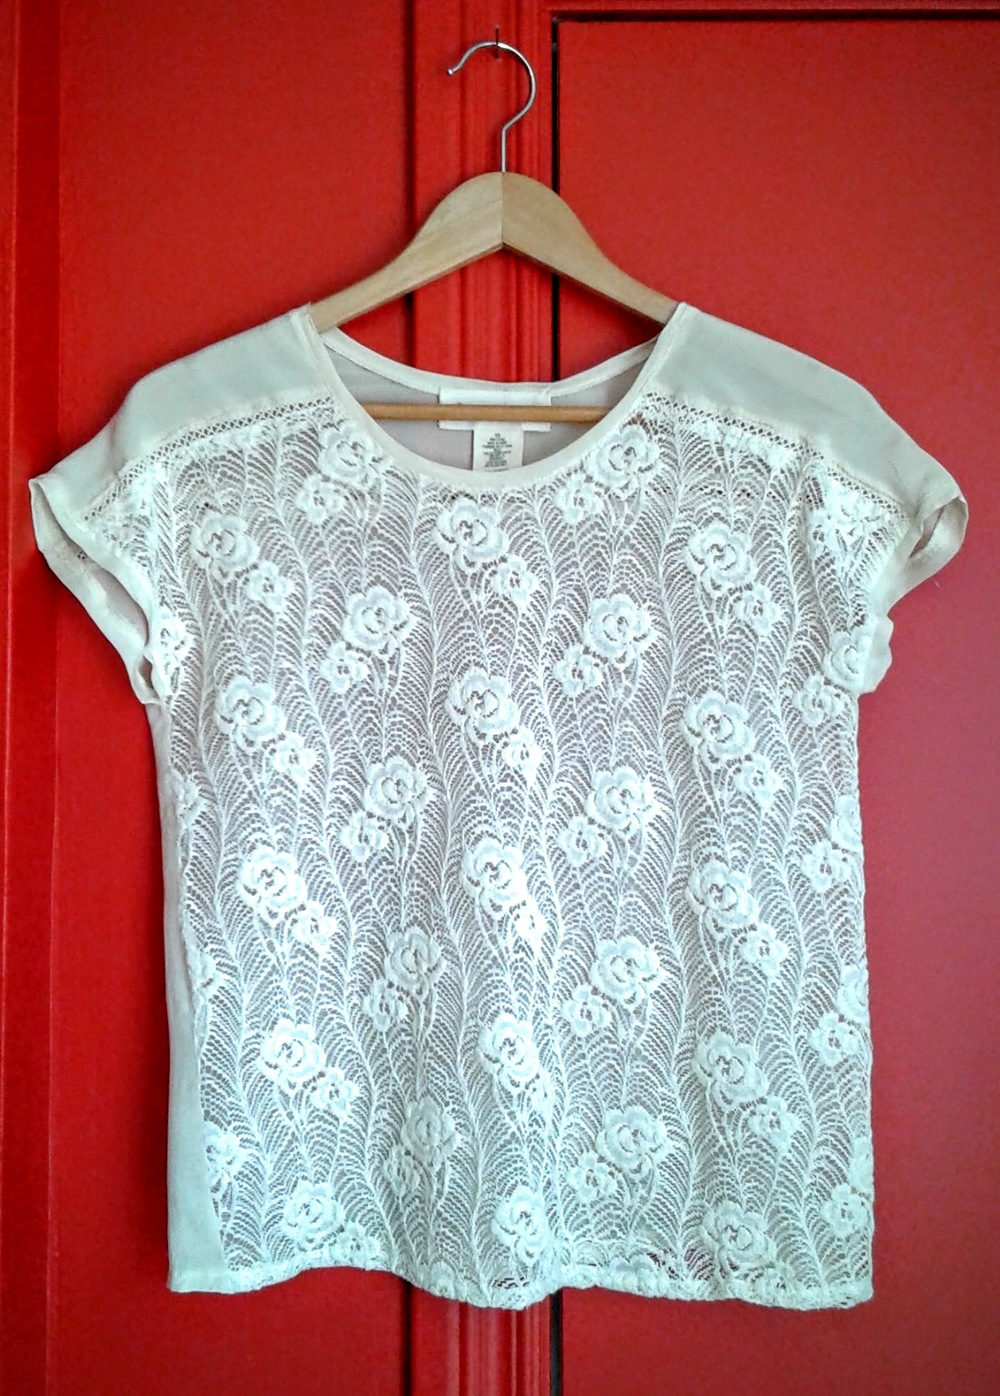 Stitch and Knot top; Size S, $30